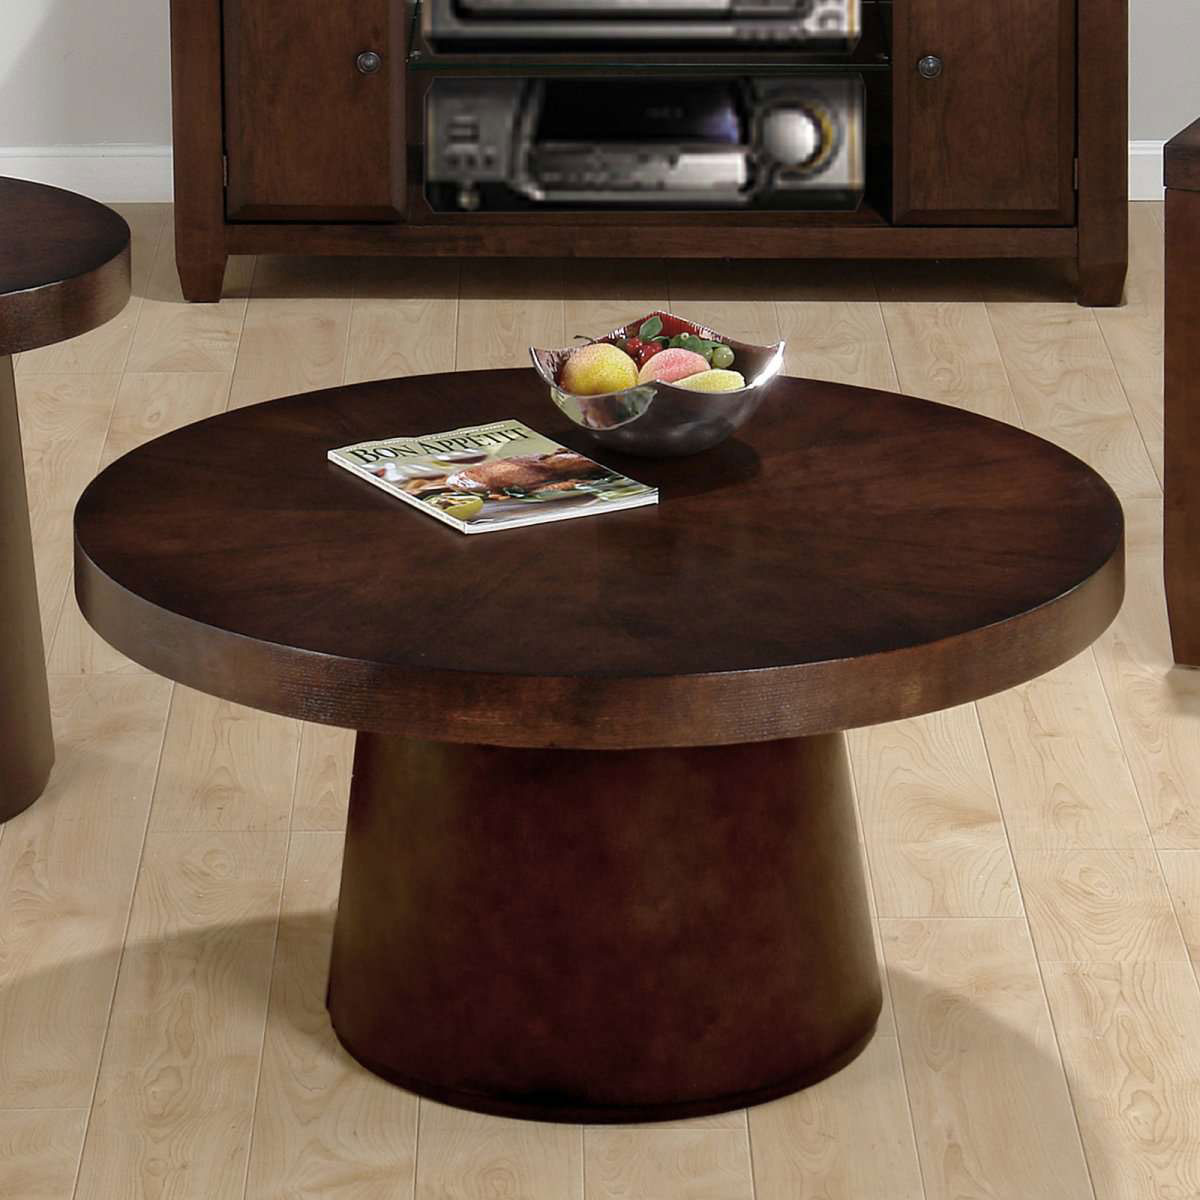 Small Round Coffee Tables Futuristic Kitchen Design Contemporary Ideas Living Room Furniture Black Wood Round Coffee Table (View 8 of 10)